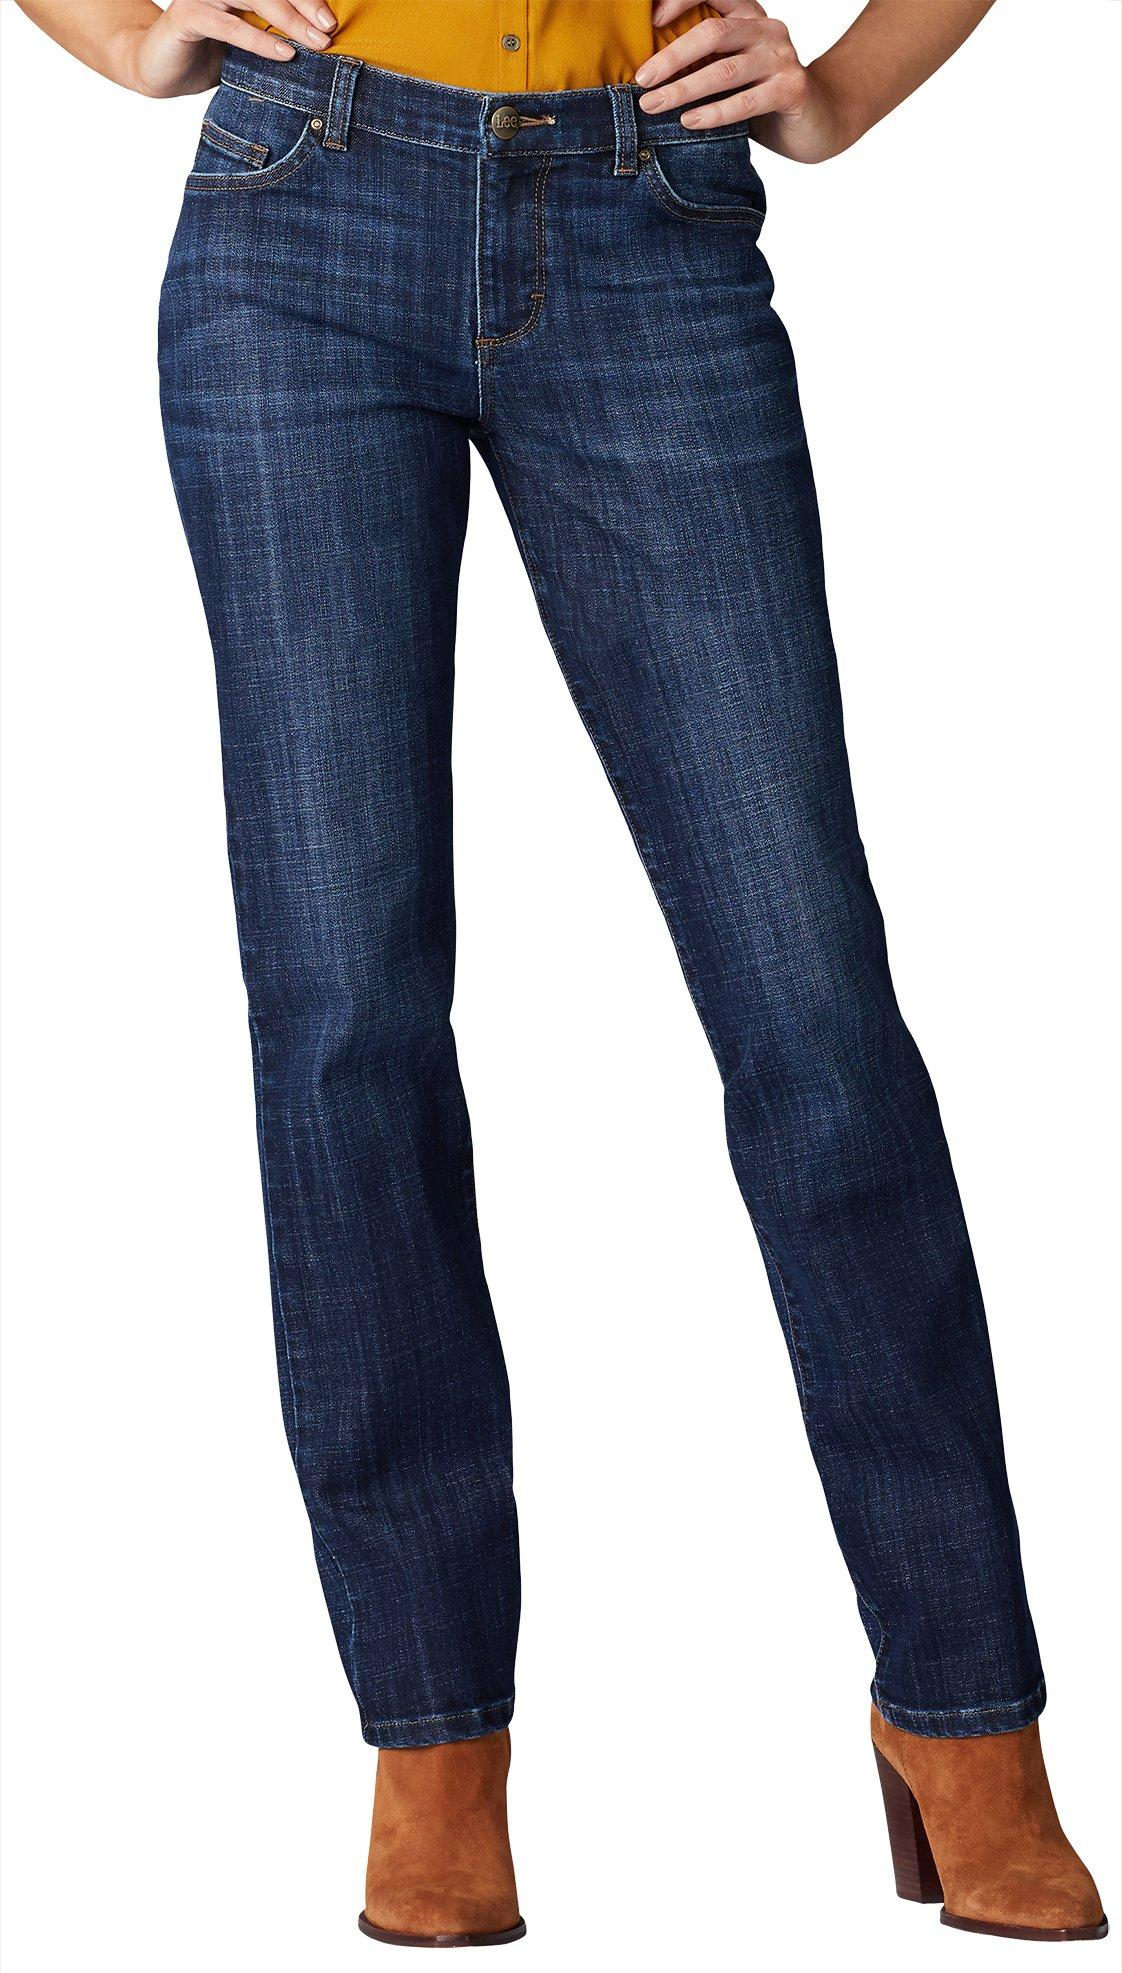 Lee Womens Relaxed Straight Leg Jeans | Bealls Florida